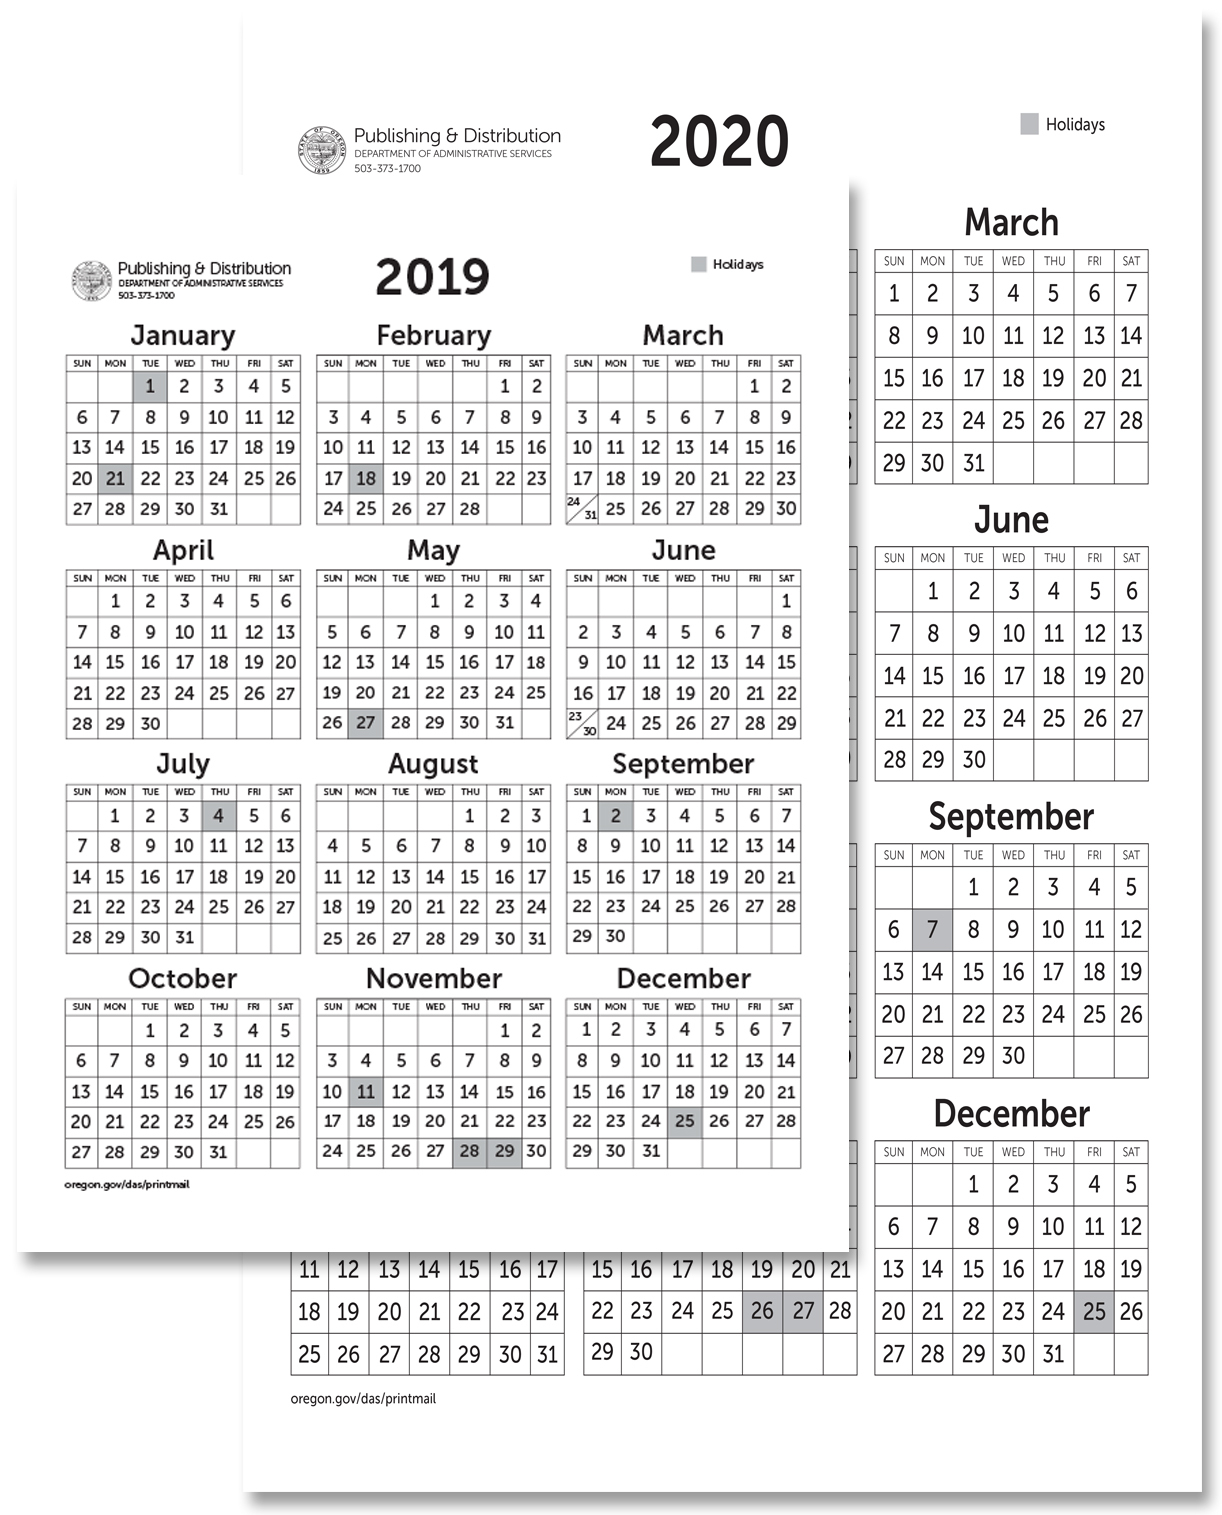 State Of Oregon: Printing, Mailing And Distribution Services - Calendars for Printable 8.5 X 11 2020 Calendar